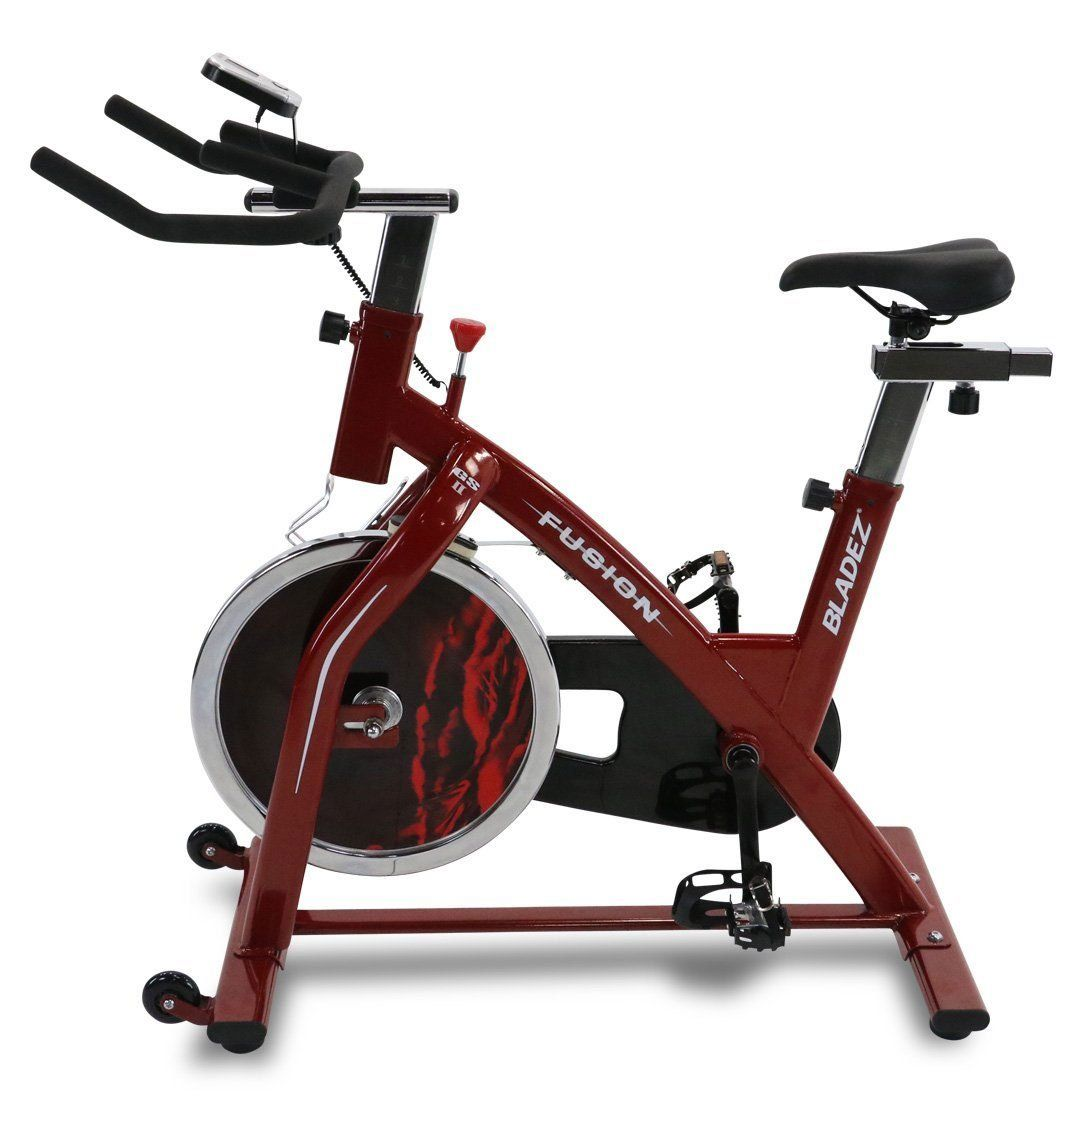 Best Spin Bike Reviews In 2020 Biking Workout Upright Exercise